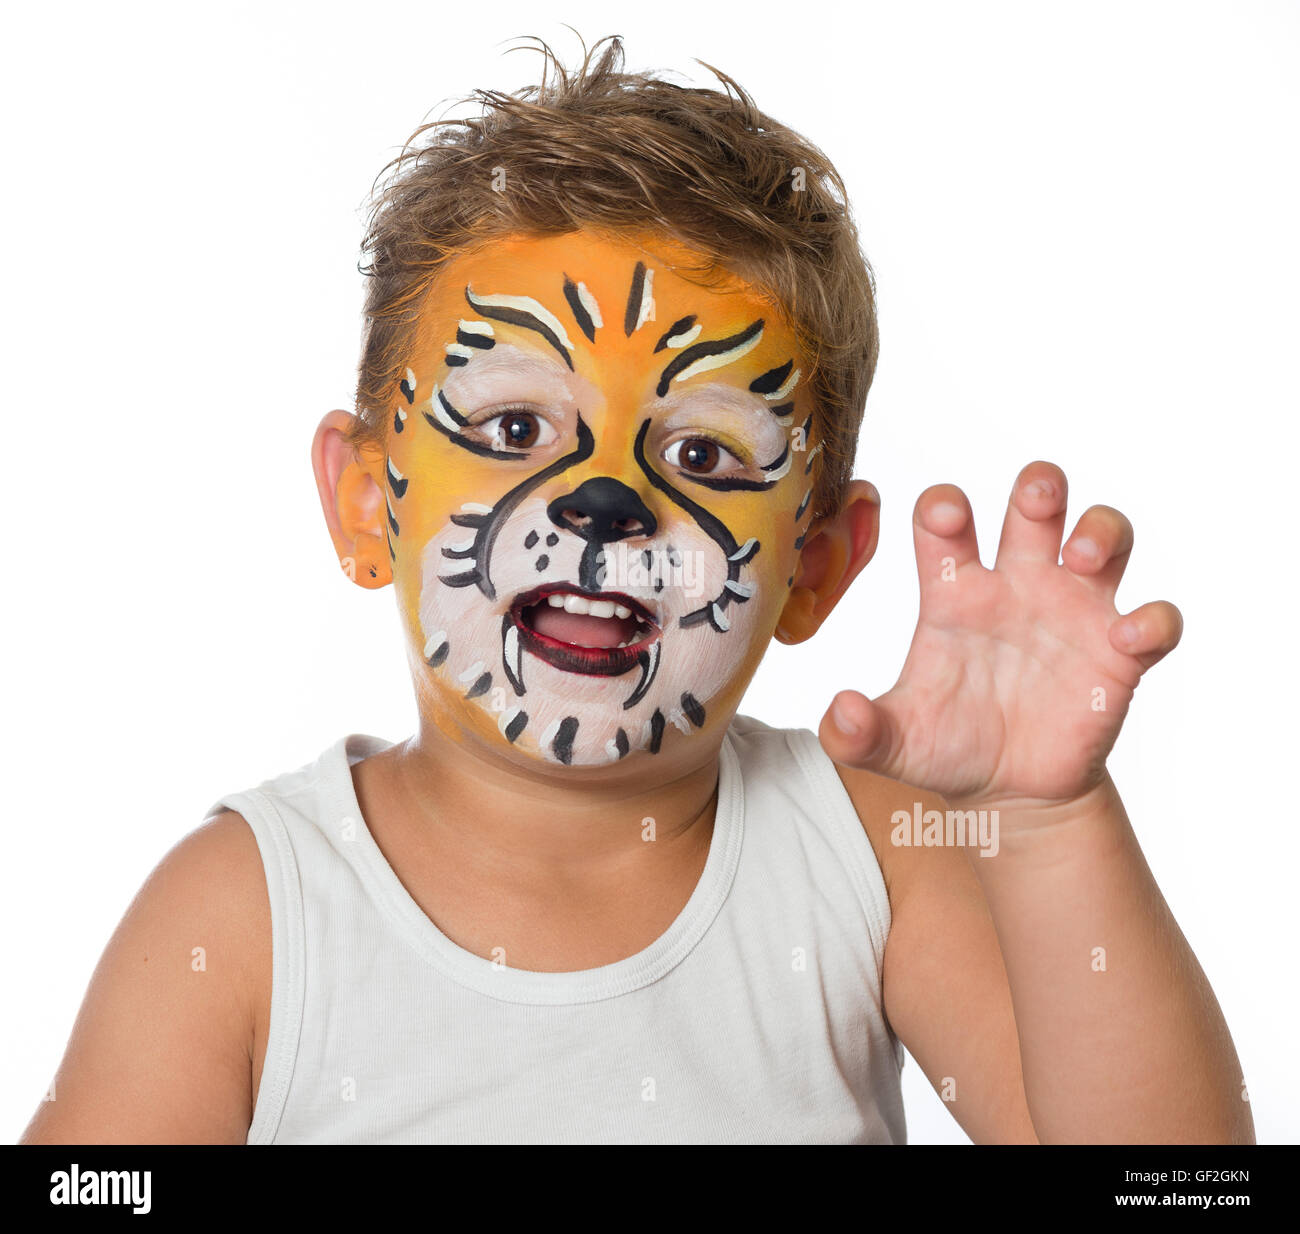 sch ne junge kind mit kinderschminken ein tiger oder ein l we stockfoto bild 112539049 alamy. Black Bedroom Furniture Sets. Home Design Ideas